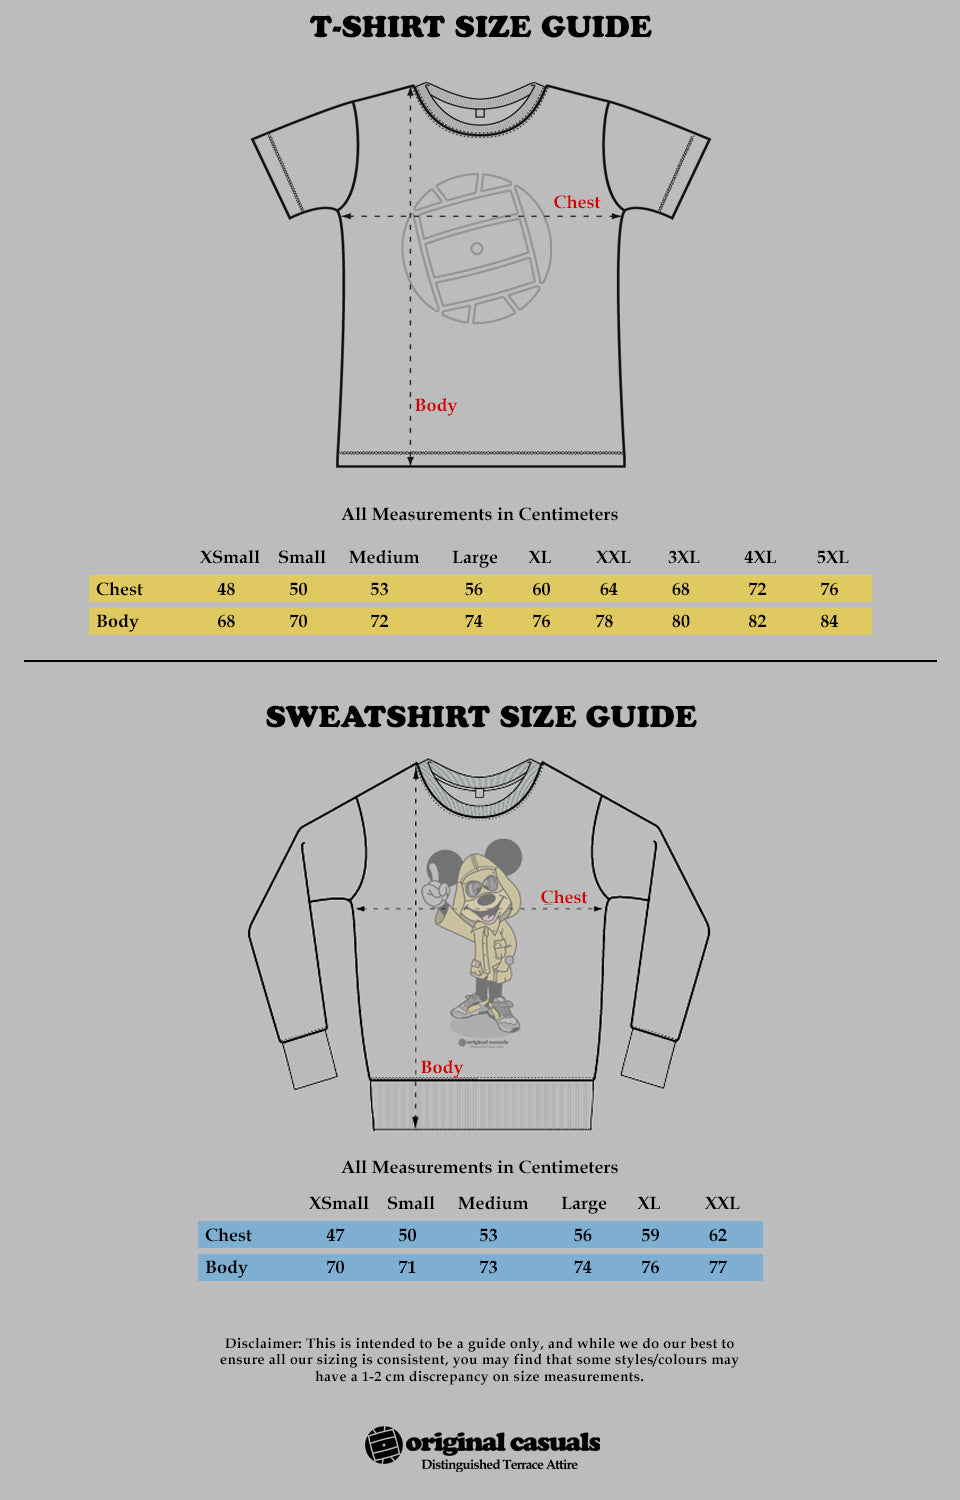 Original Casuals Clothing Size Guide